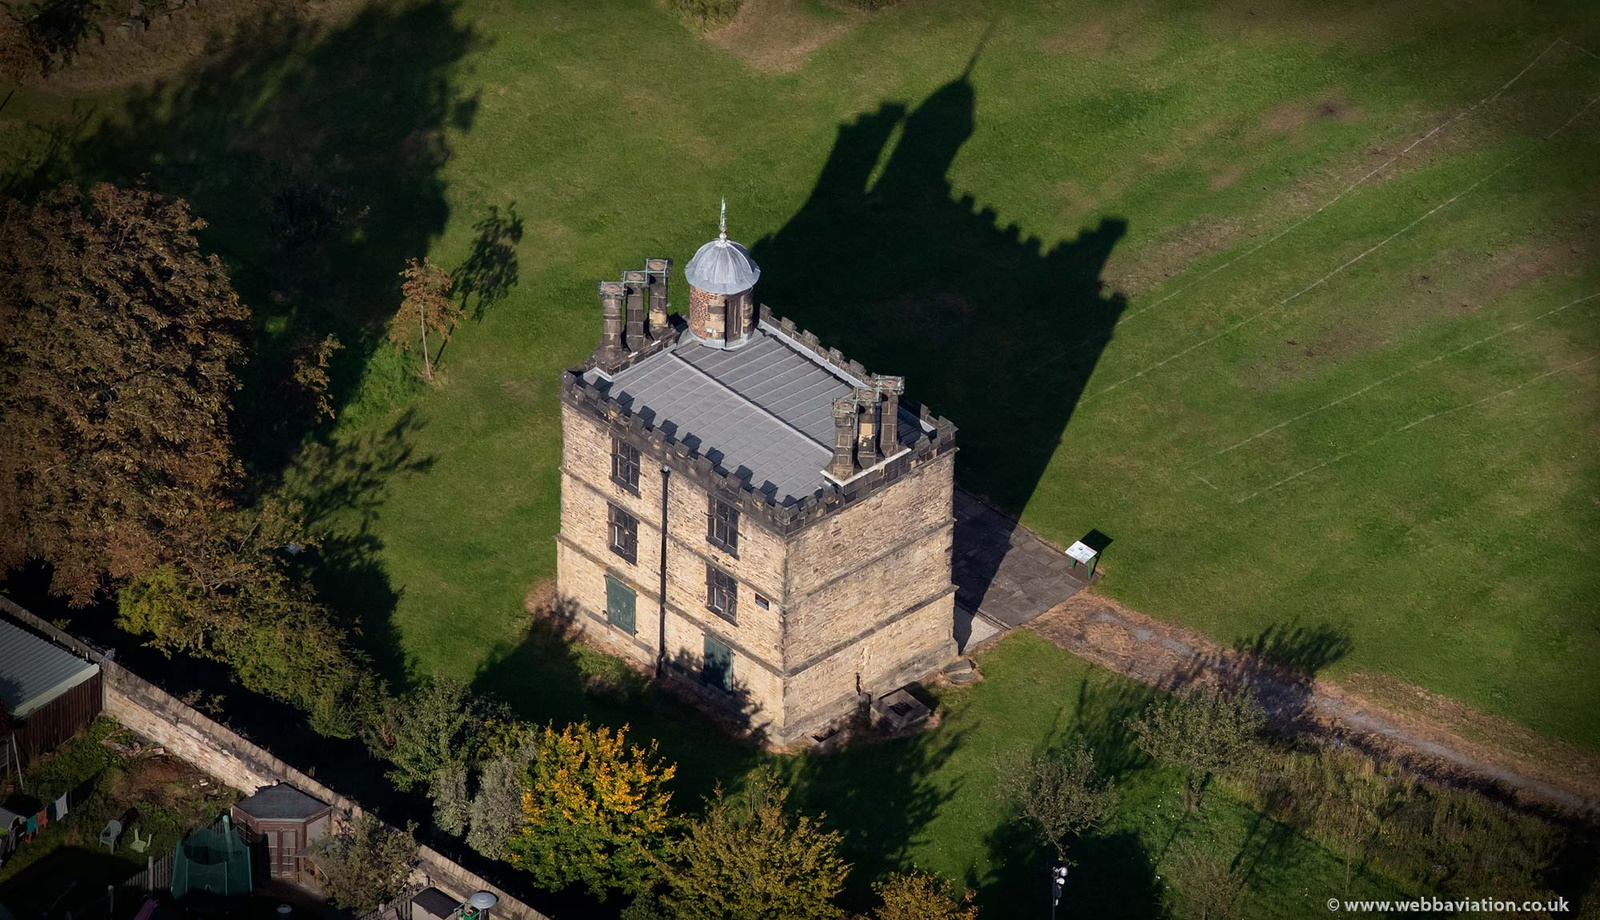 Turret House from the air